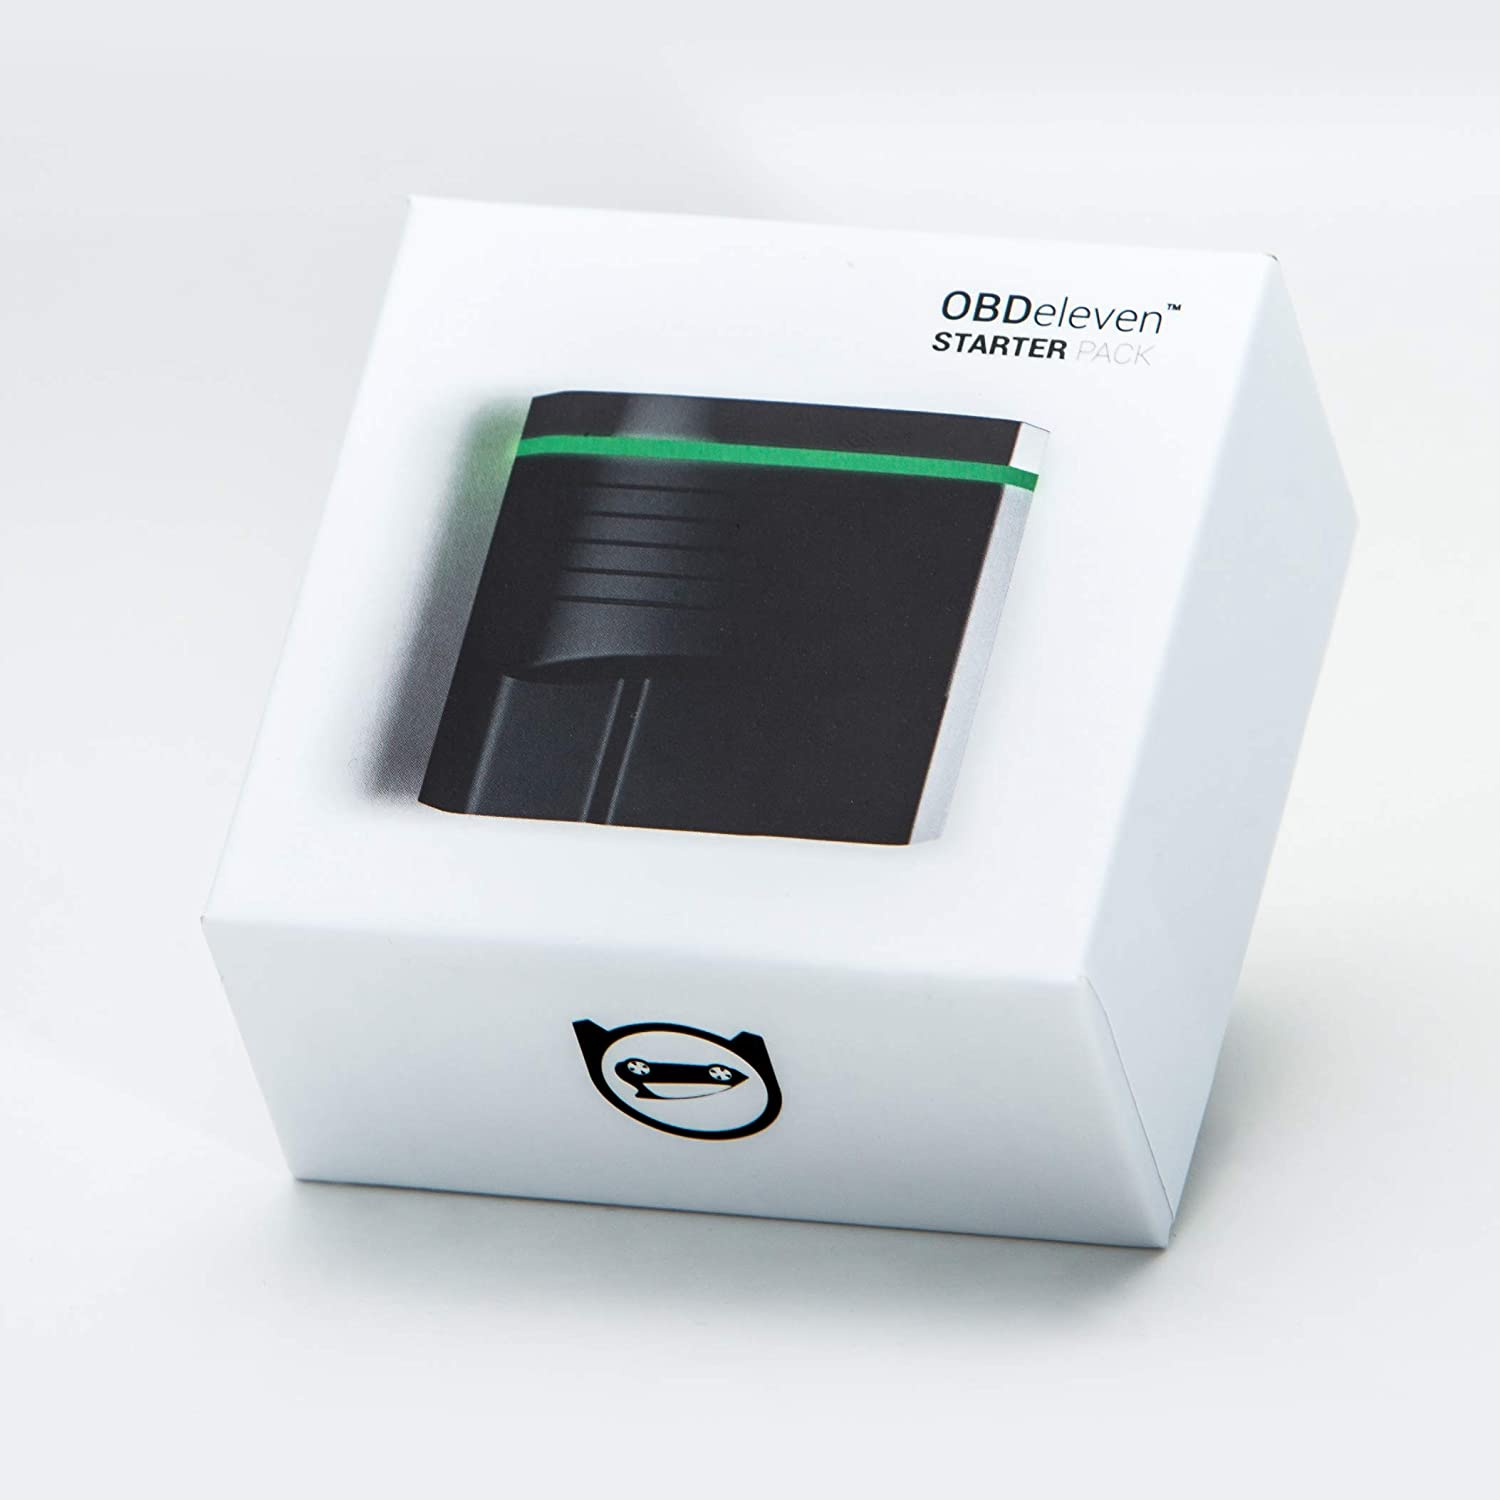 OBDeleven Starter Edition Next Generation Professional OBD2 Bluetooth Diagnostic Scan Tool for Android and iOS